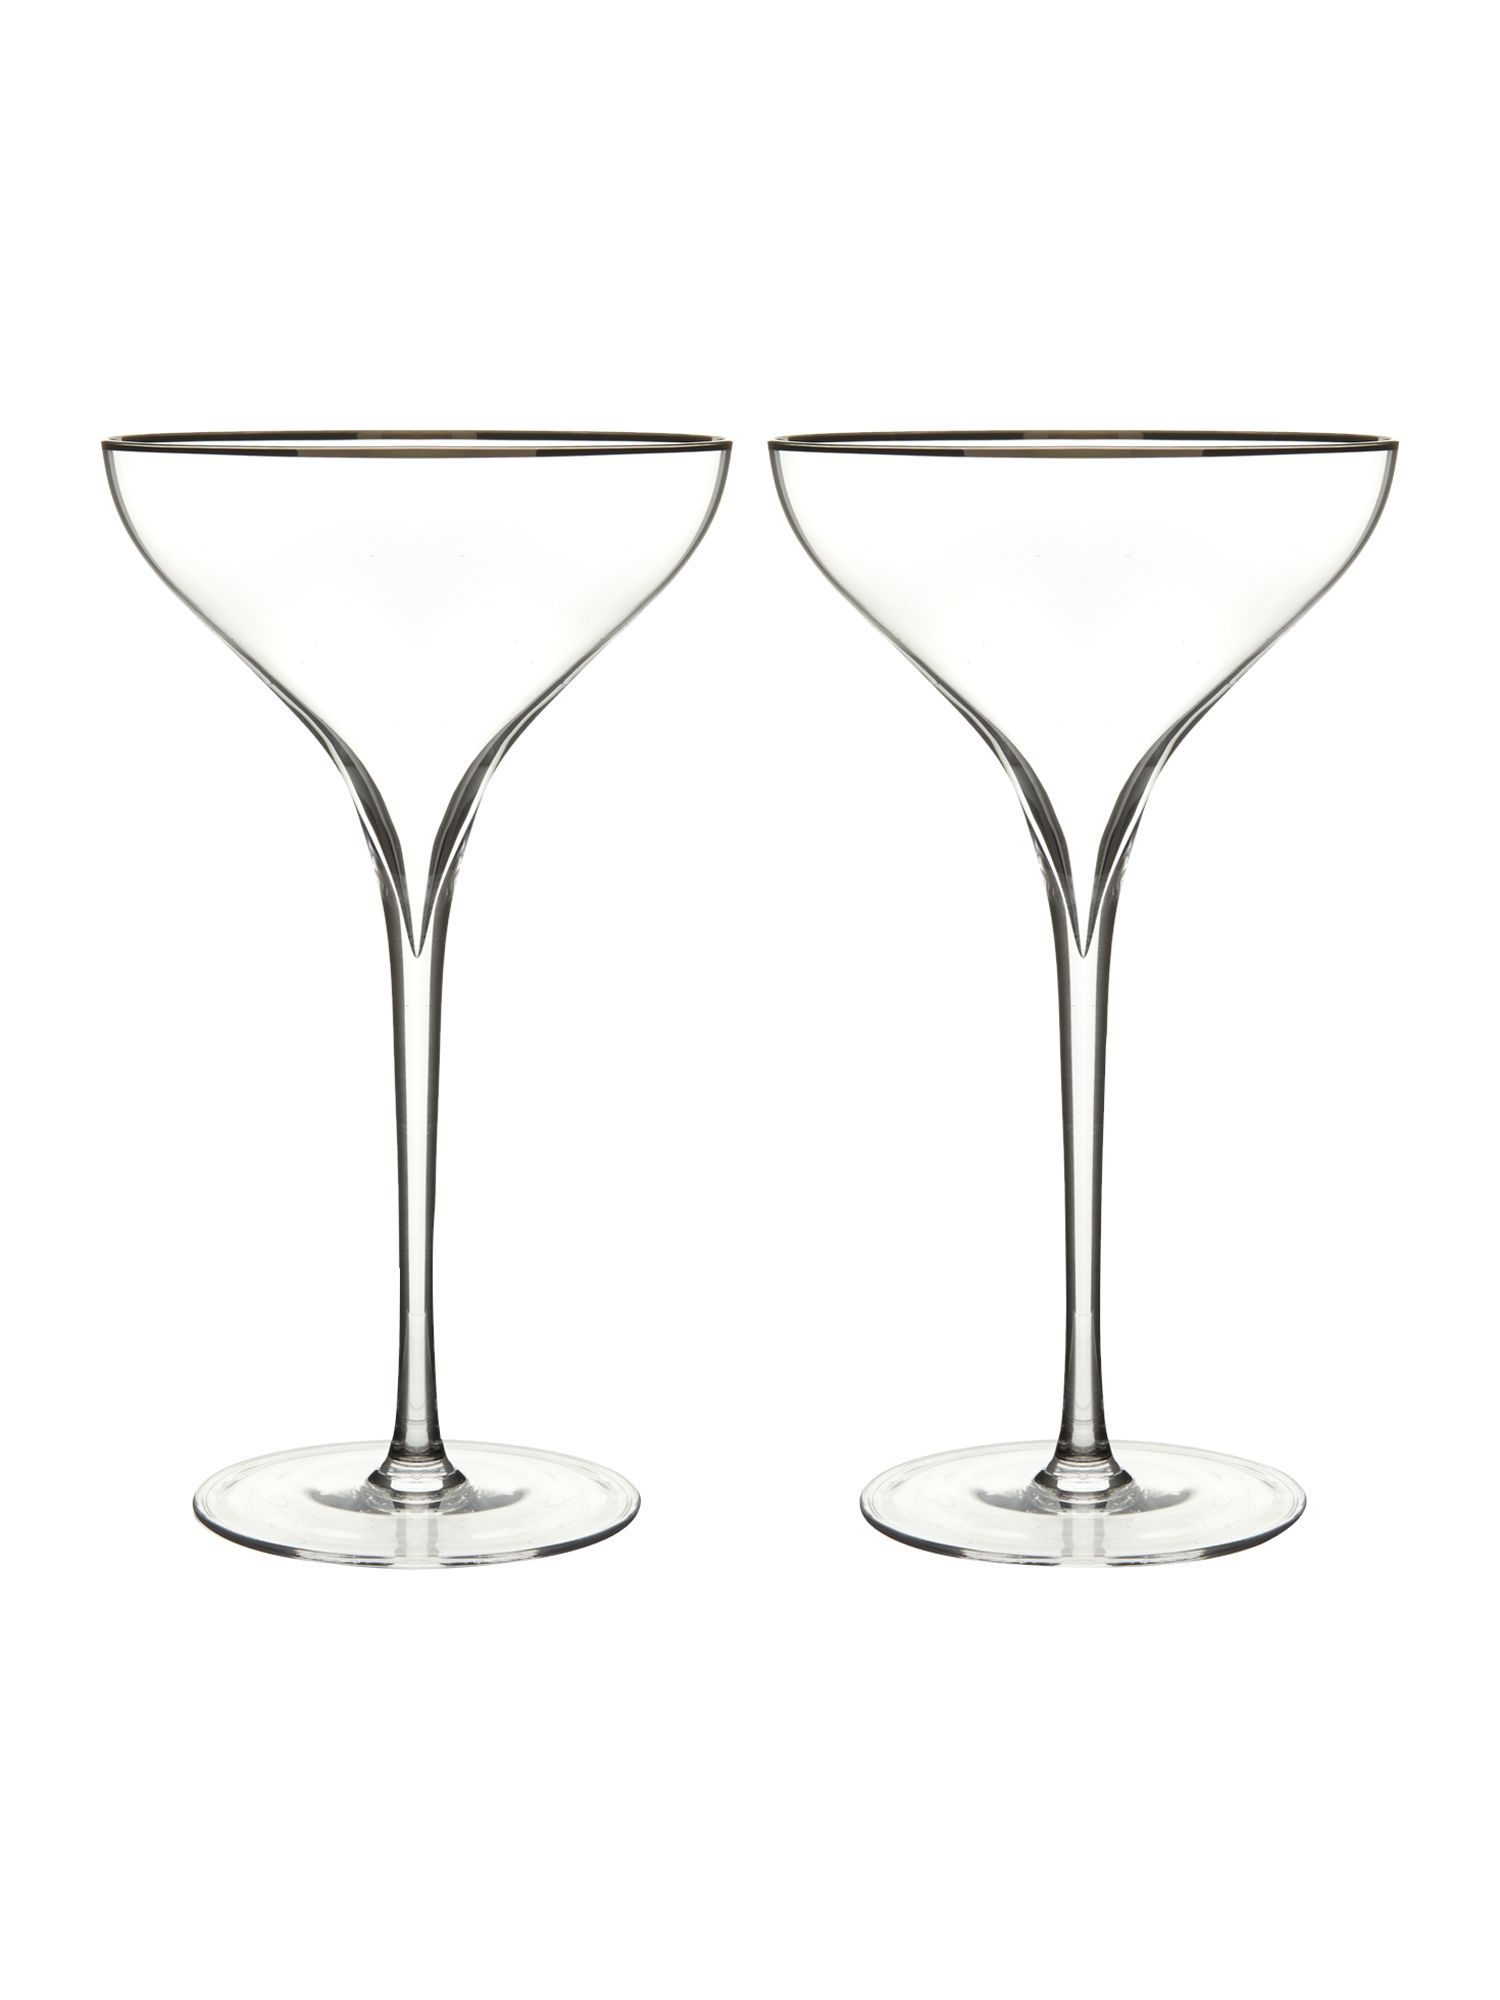 Savoy champagne saucer set of 2